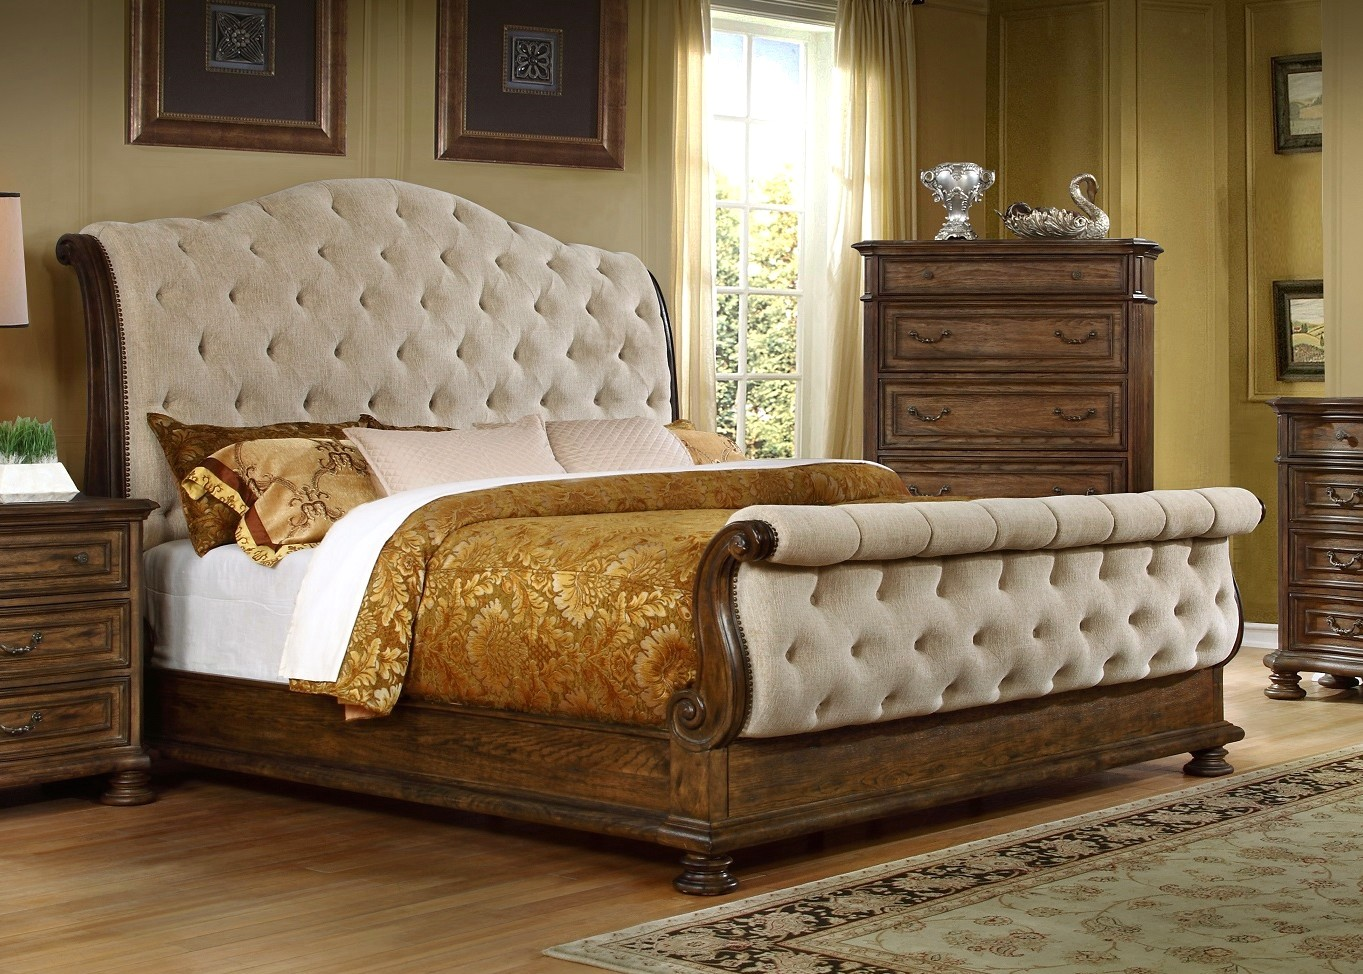 Aveline classic upholstered 4 pc sleigh queen bed set in pecan finish for Upholstered sleigh bedroom set